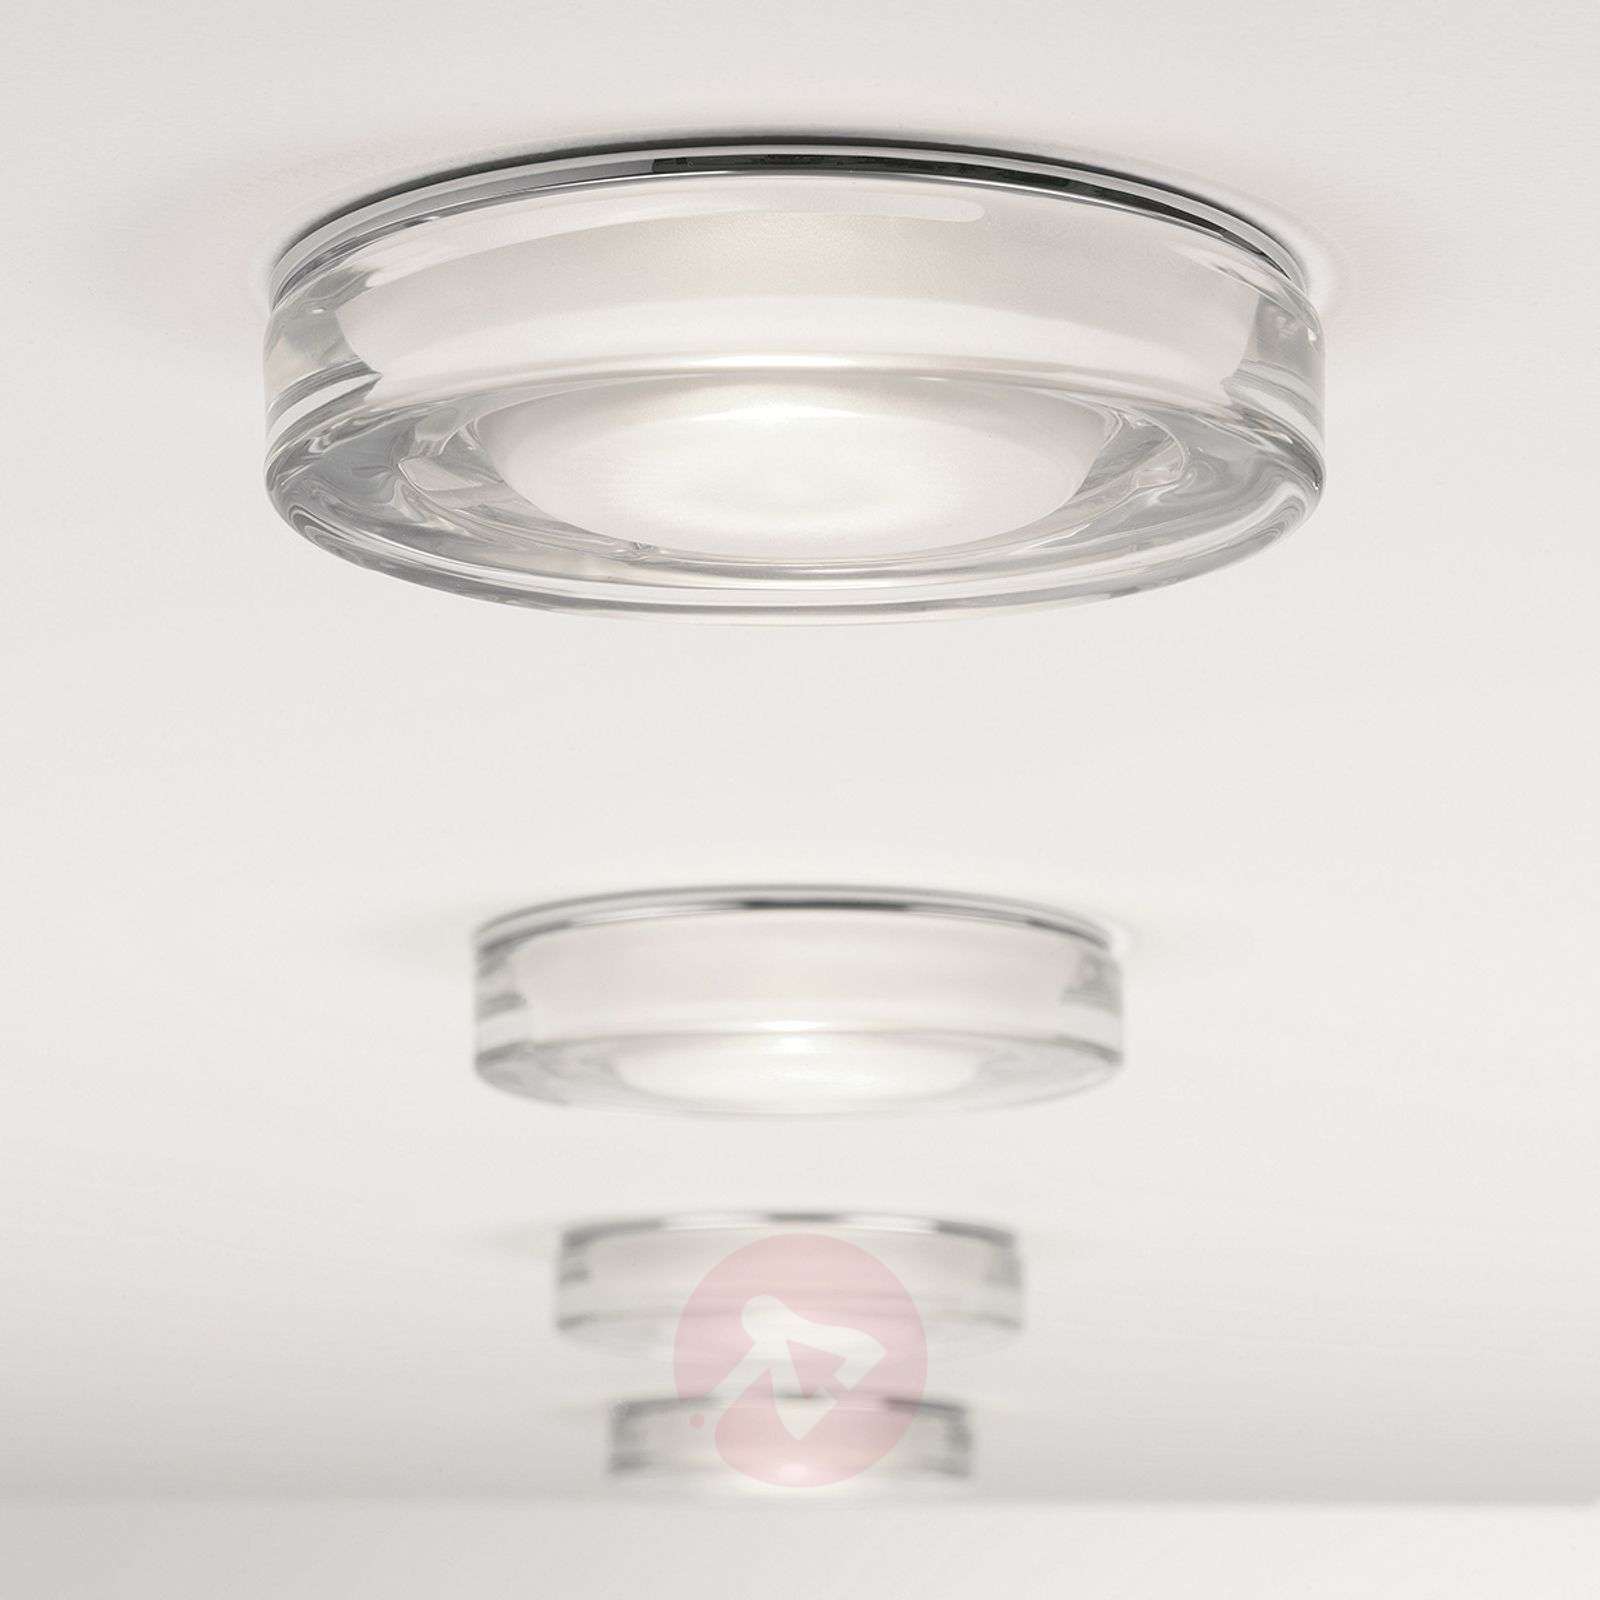 Vancouver Round Built-In Ceiling Light Decorative